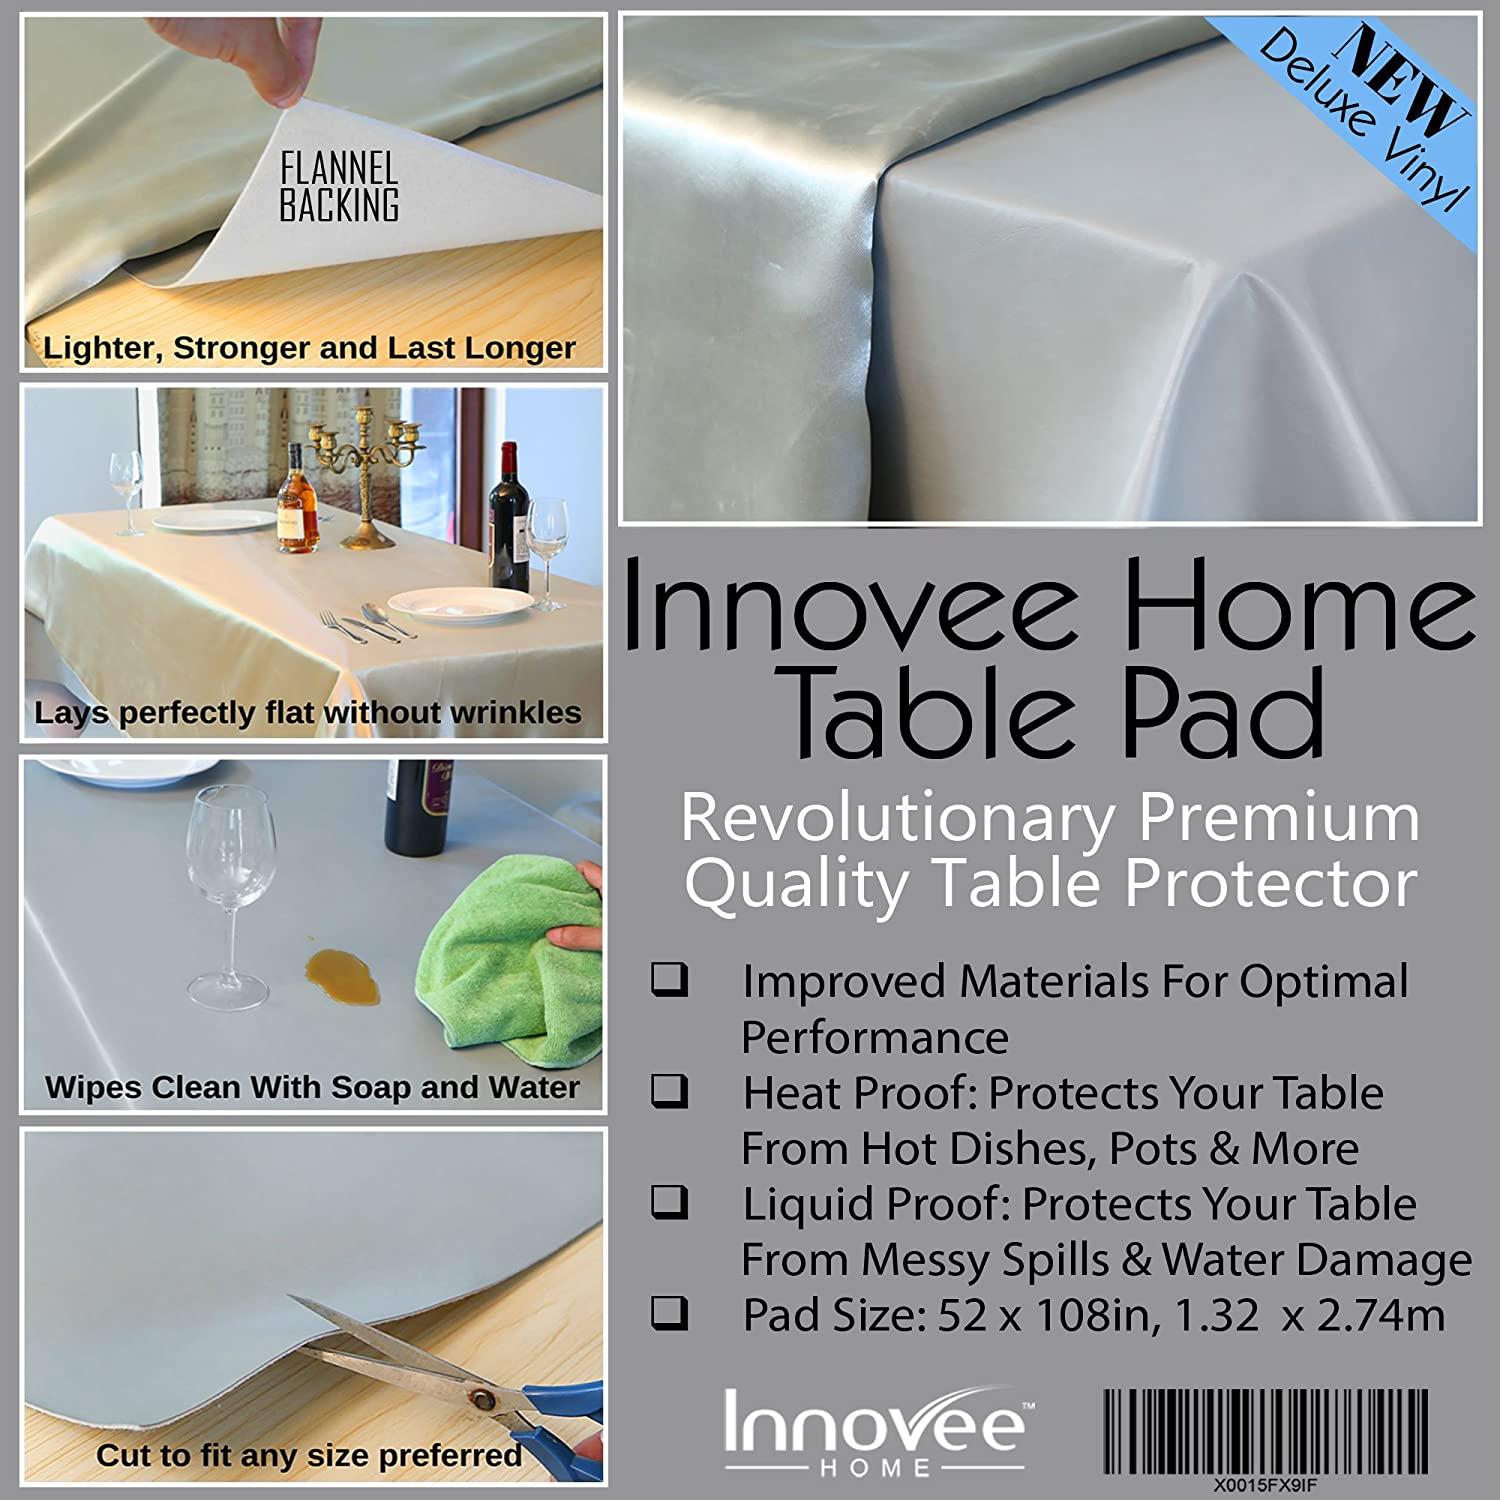 Innovee Revolutionary Table Pad   Protects Table From Spills U0026 Heat   52 X  108 Inch Premium Table Protector   Flannel Backing   Lies Flat   Cut To Fit  Any ...